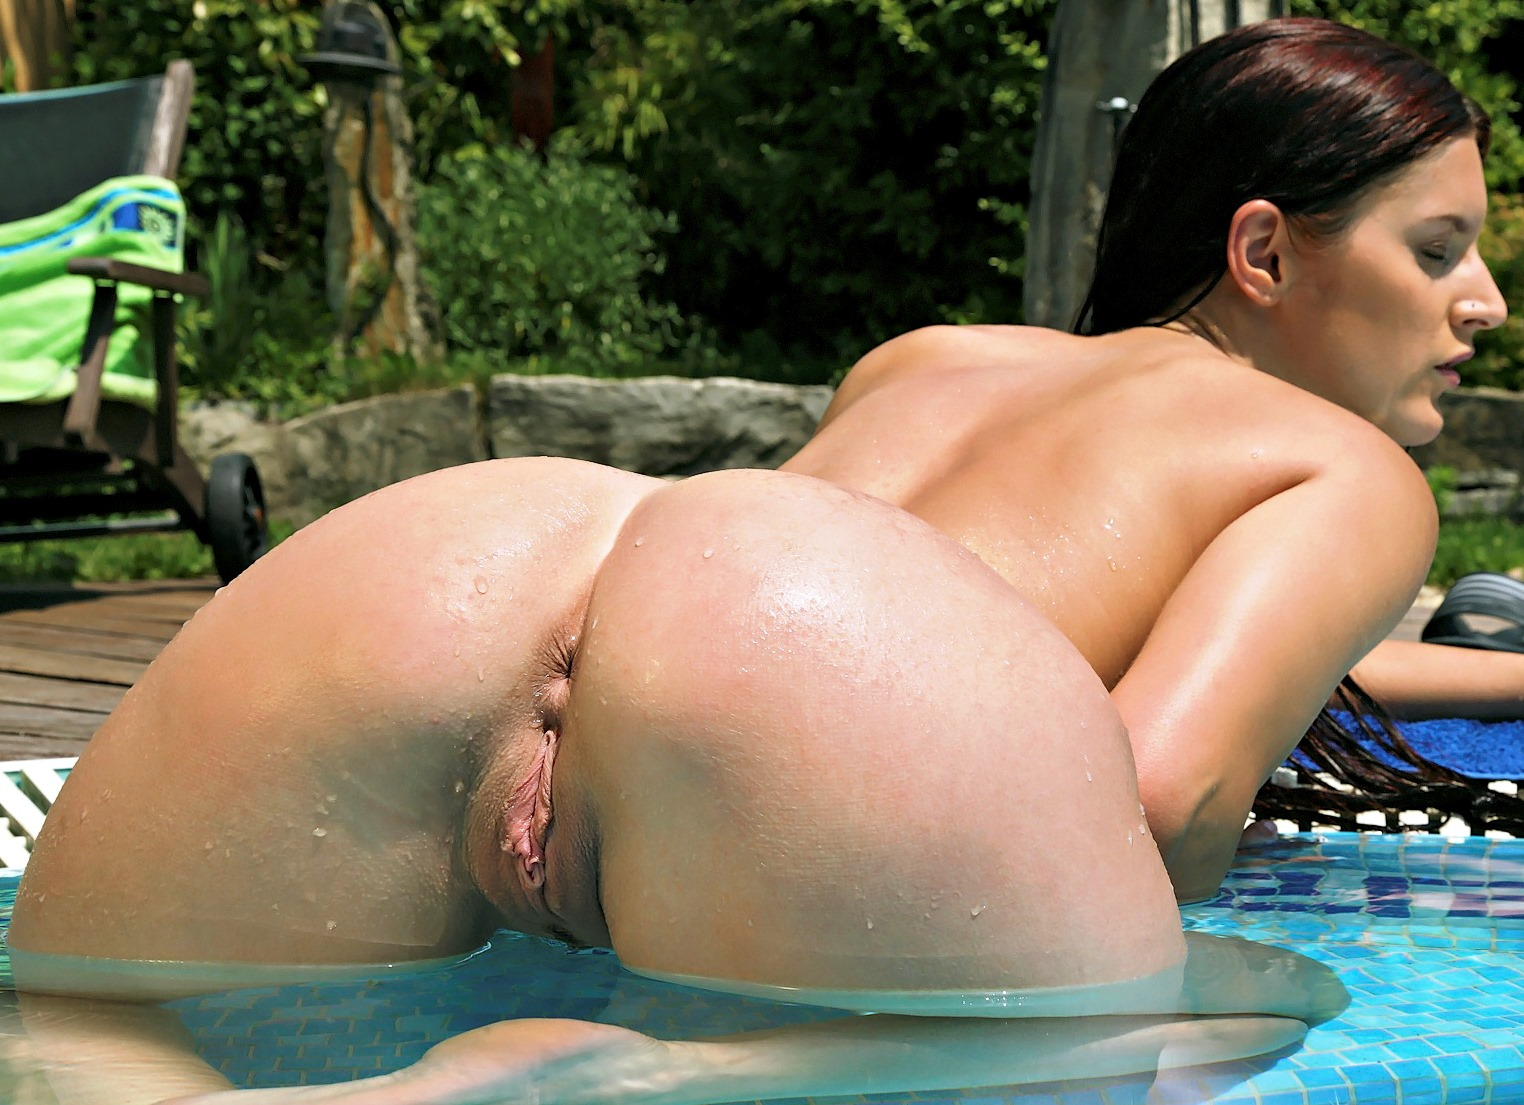 Fountain free xxx porn pics hq watch sex images